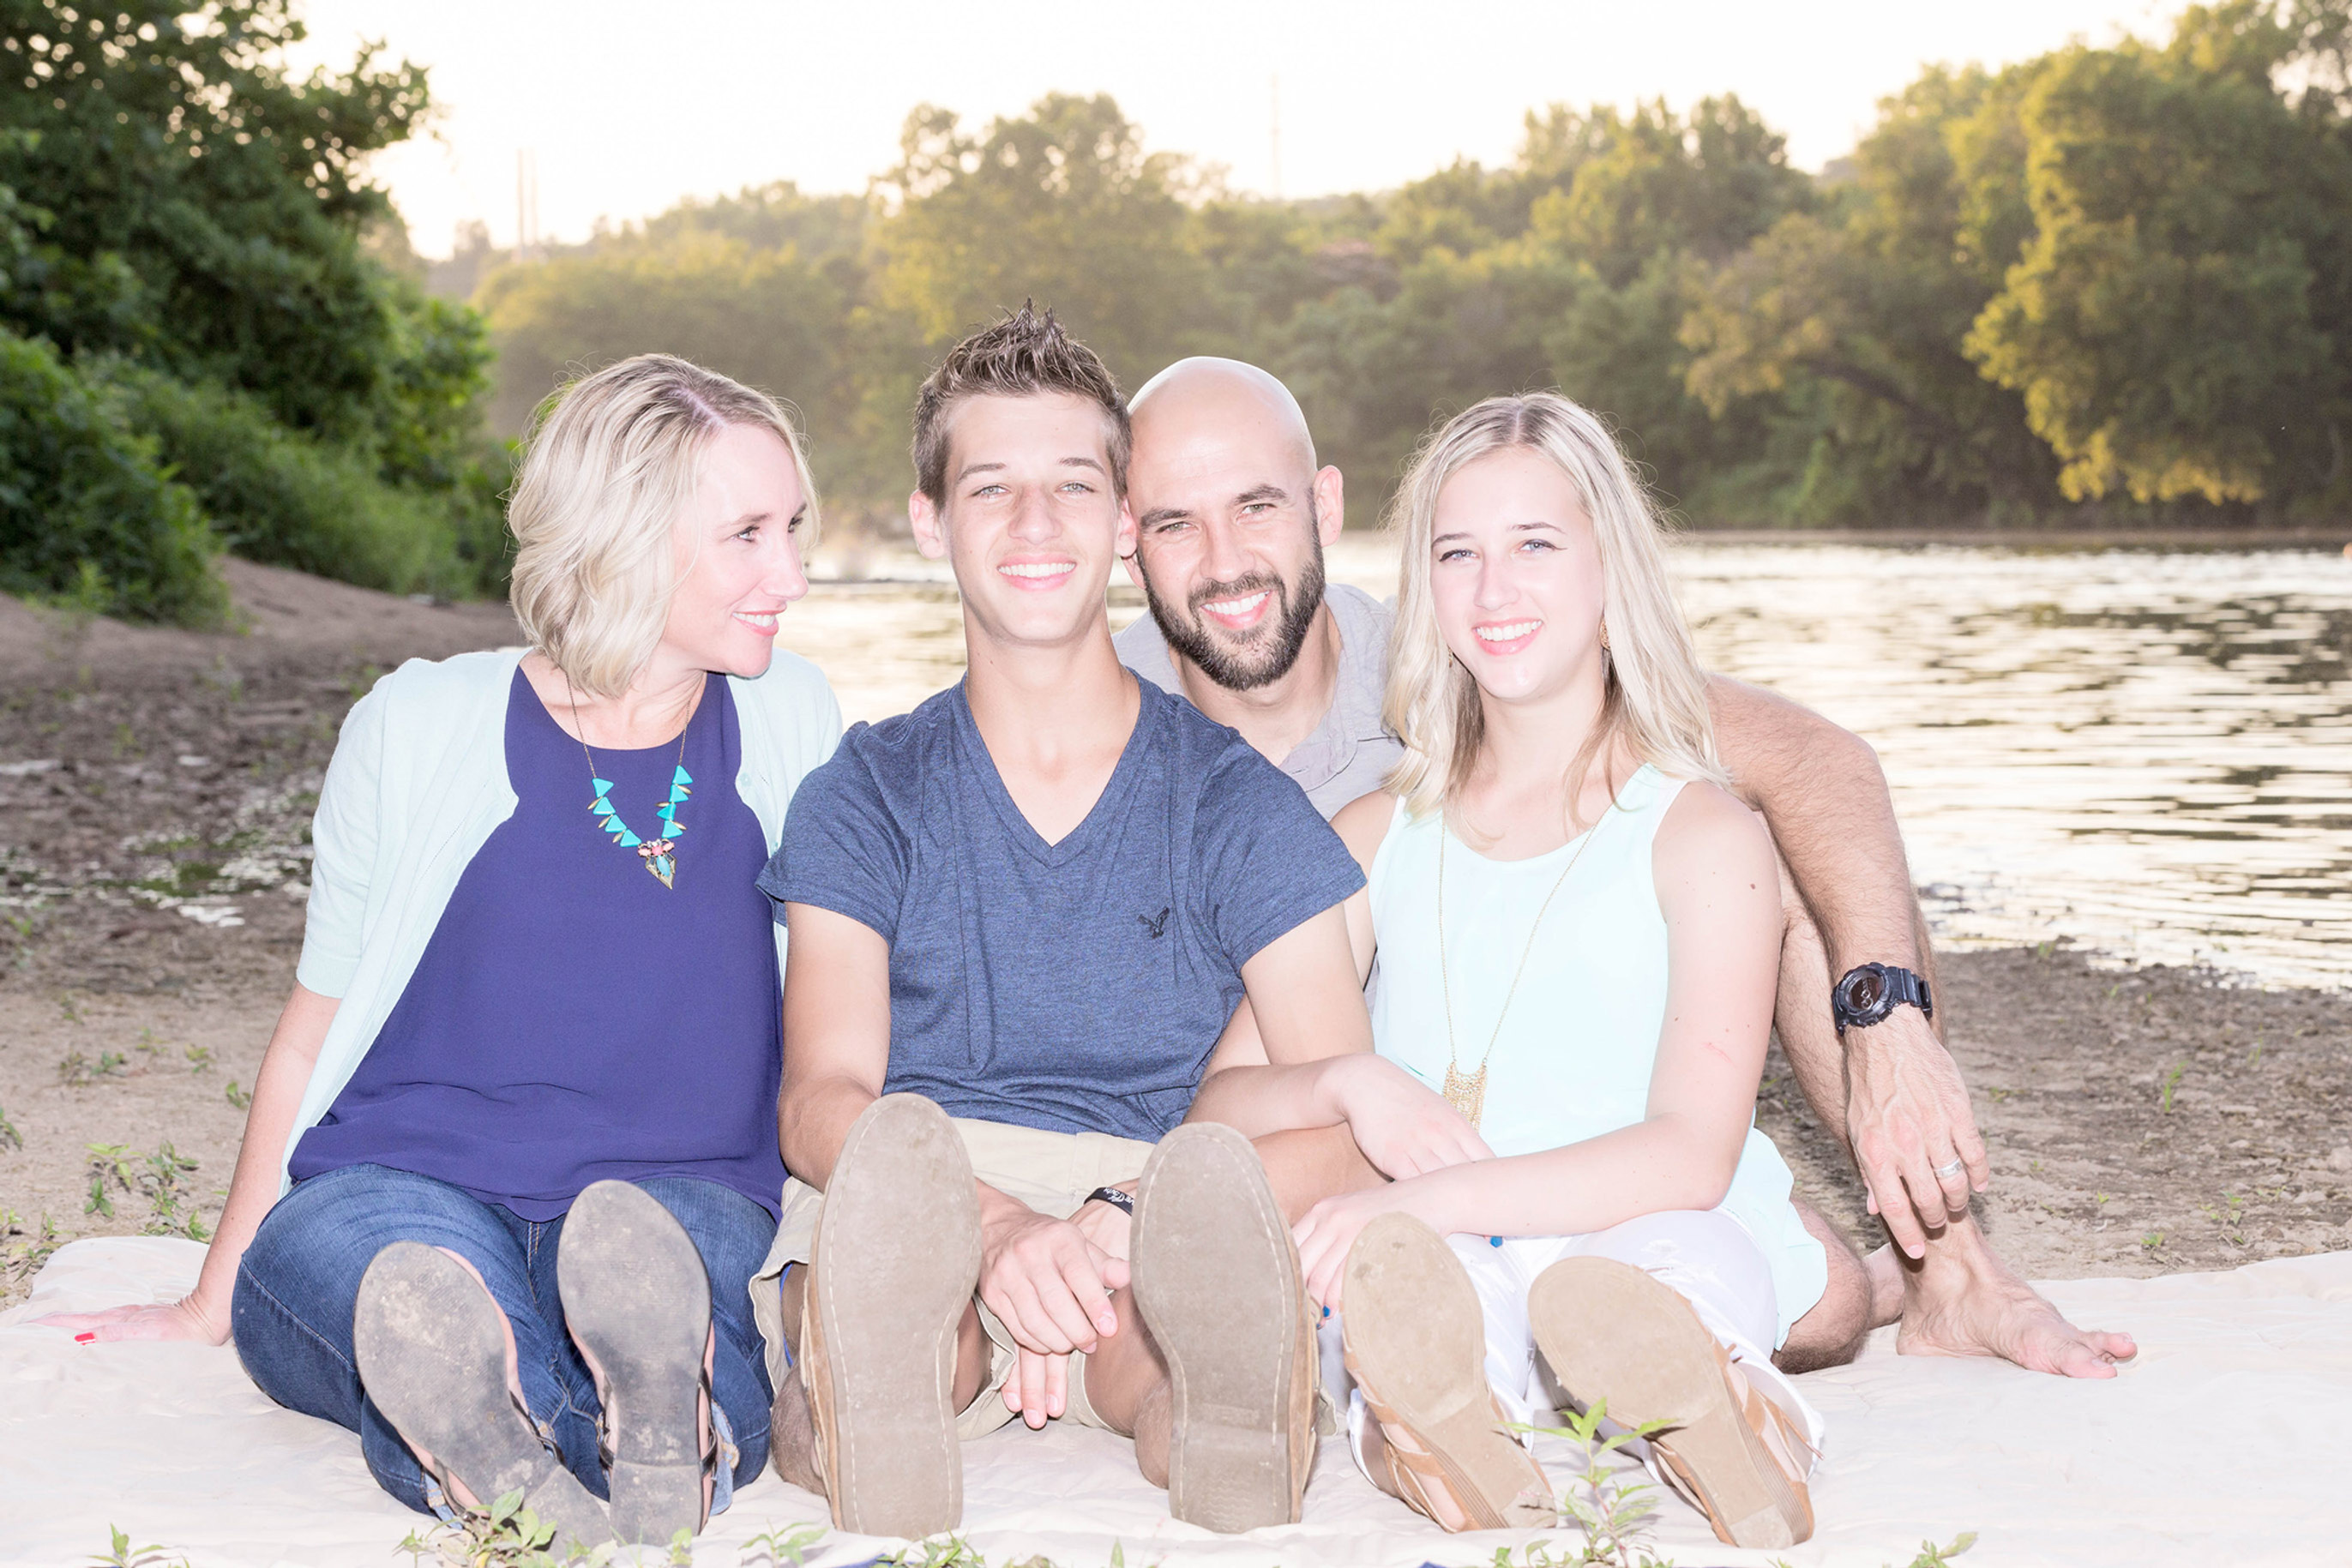 Family Session (Up to 10 people)